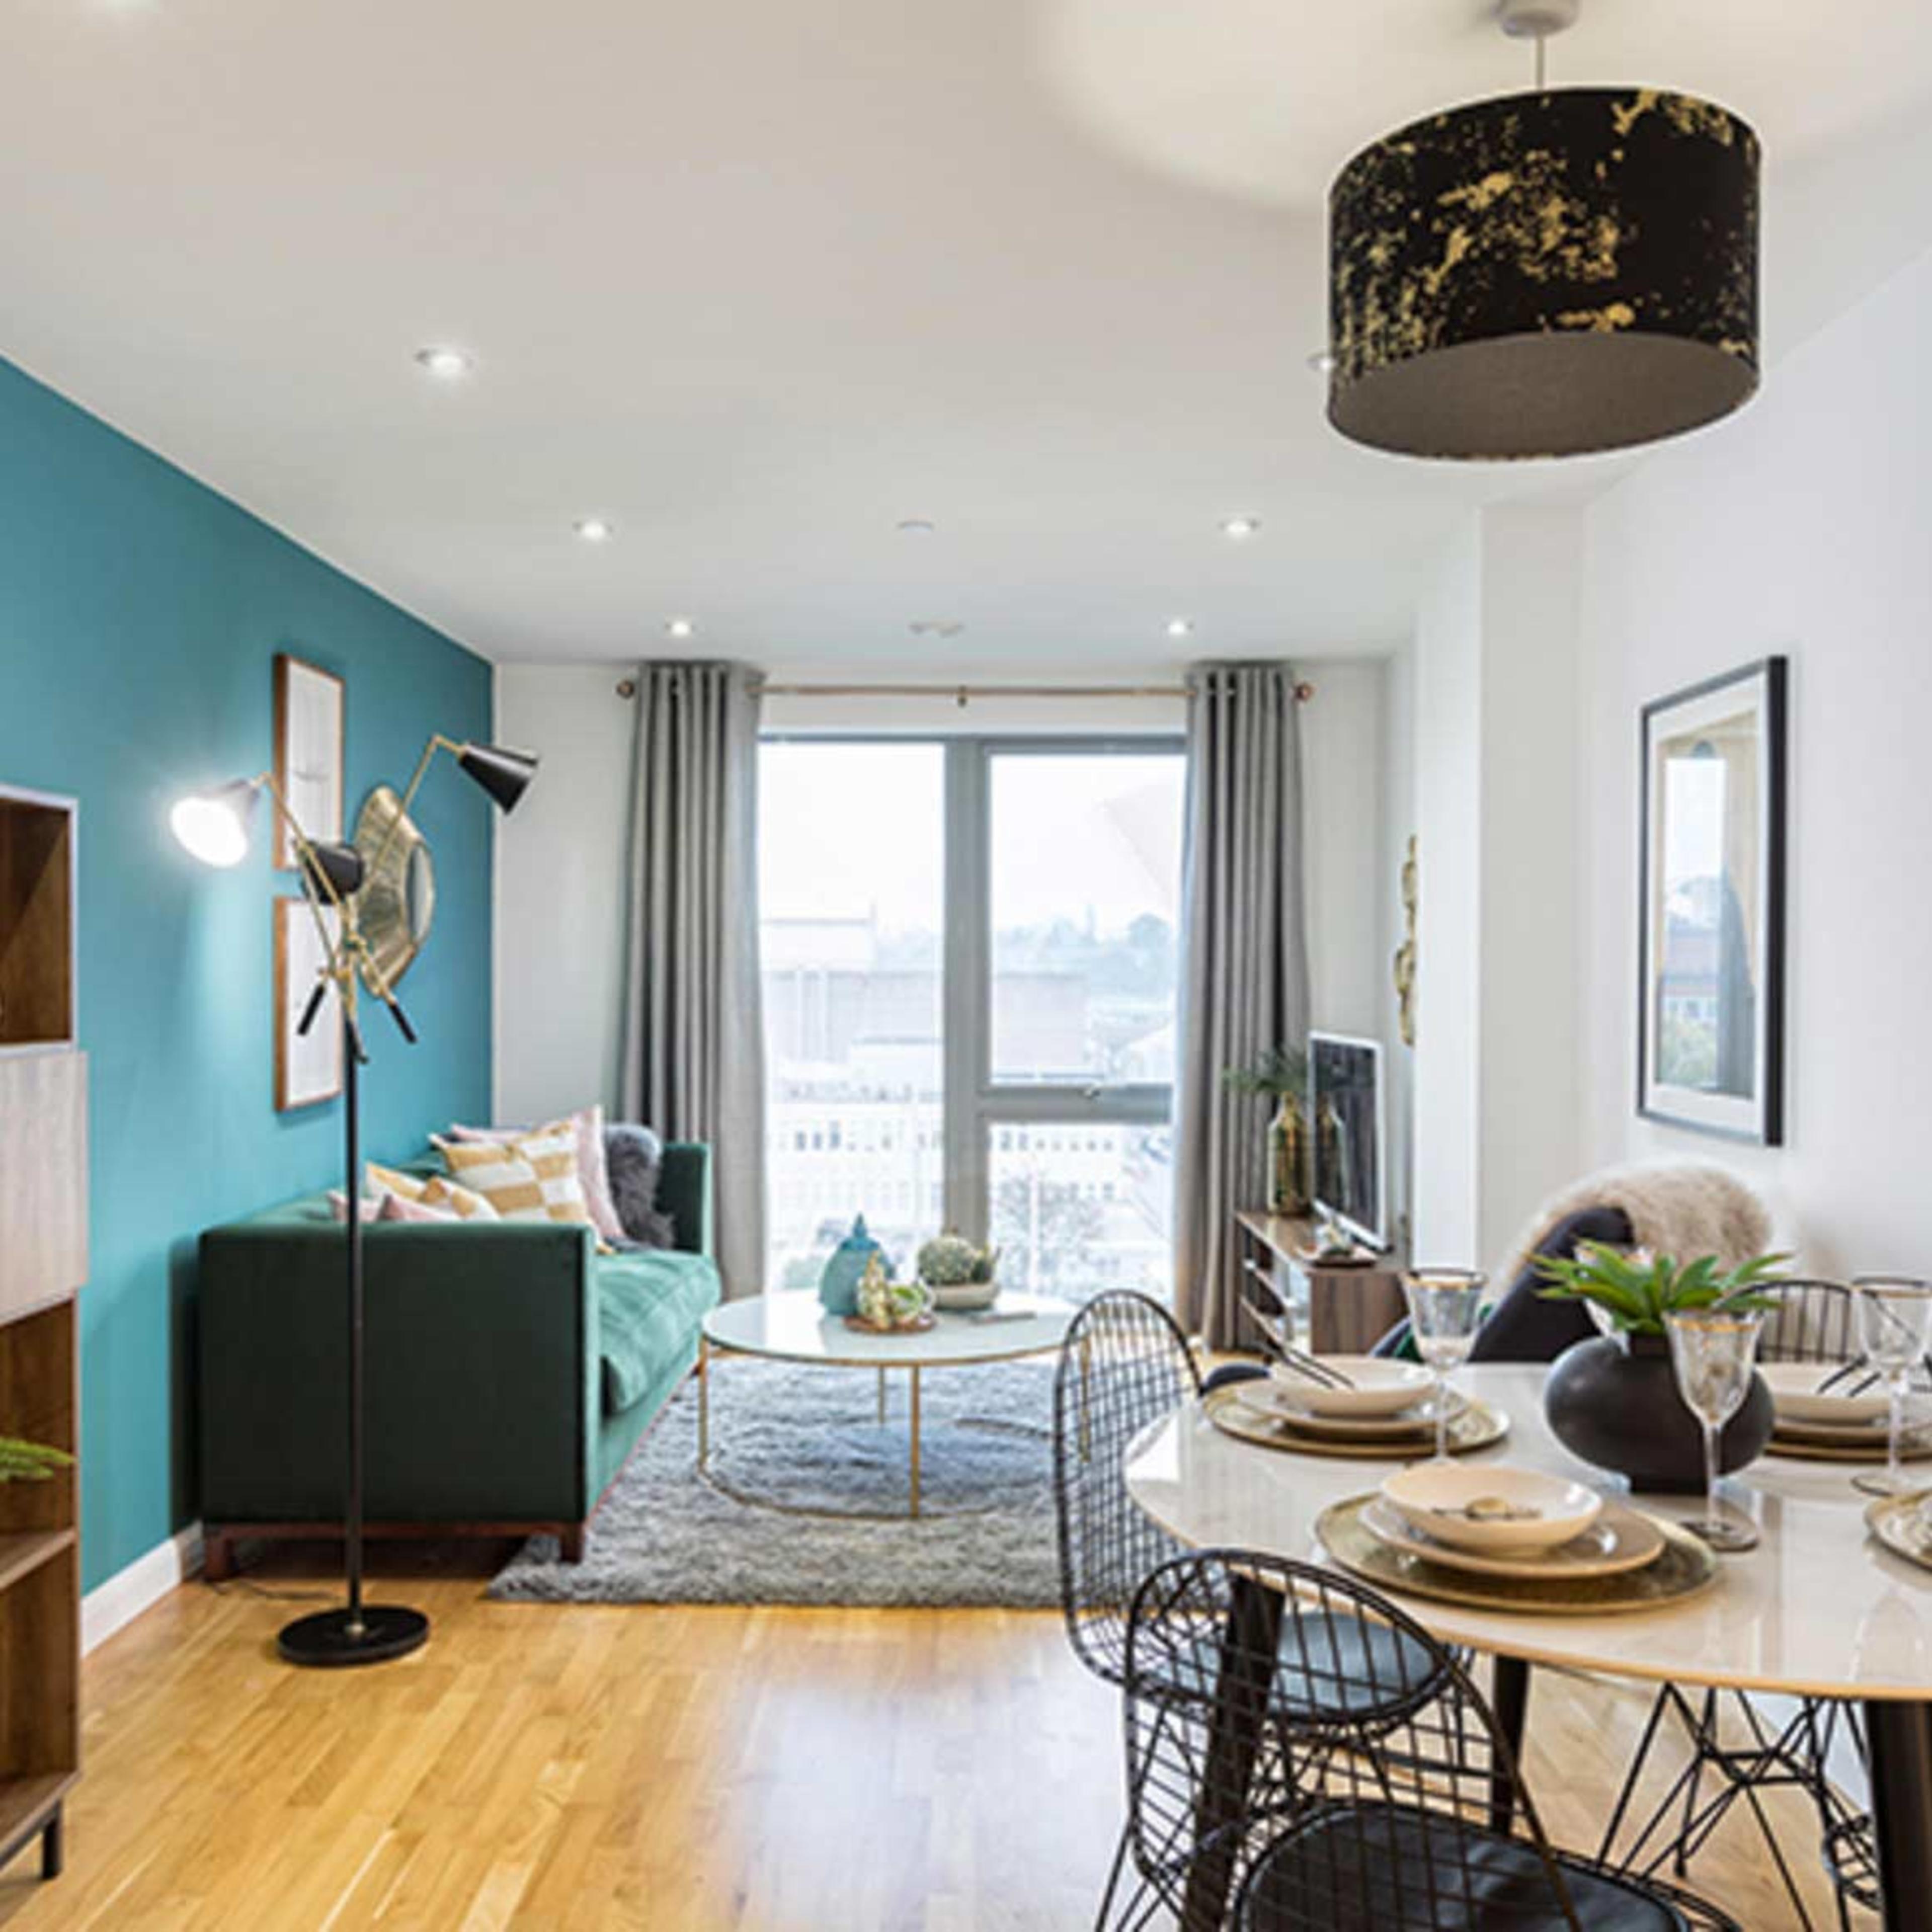 An open plan new build apartment living and dining area with dining table, sofa and full height window